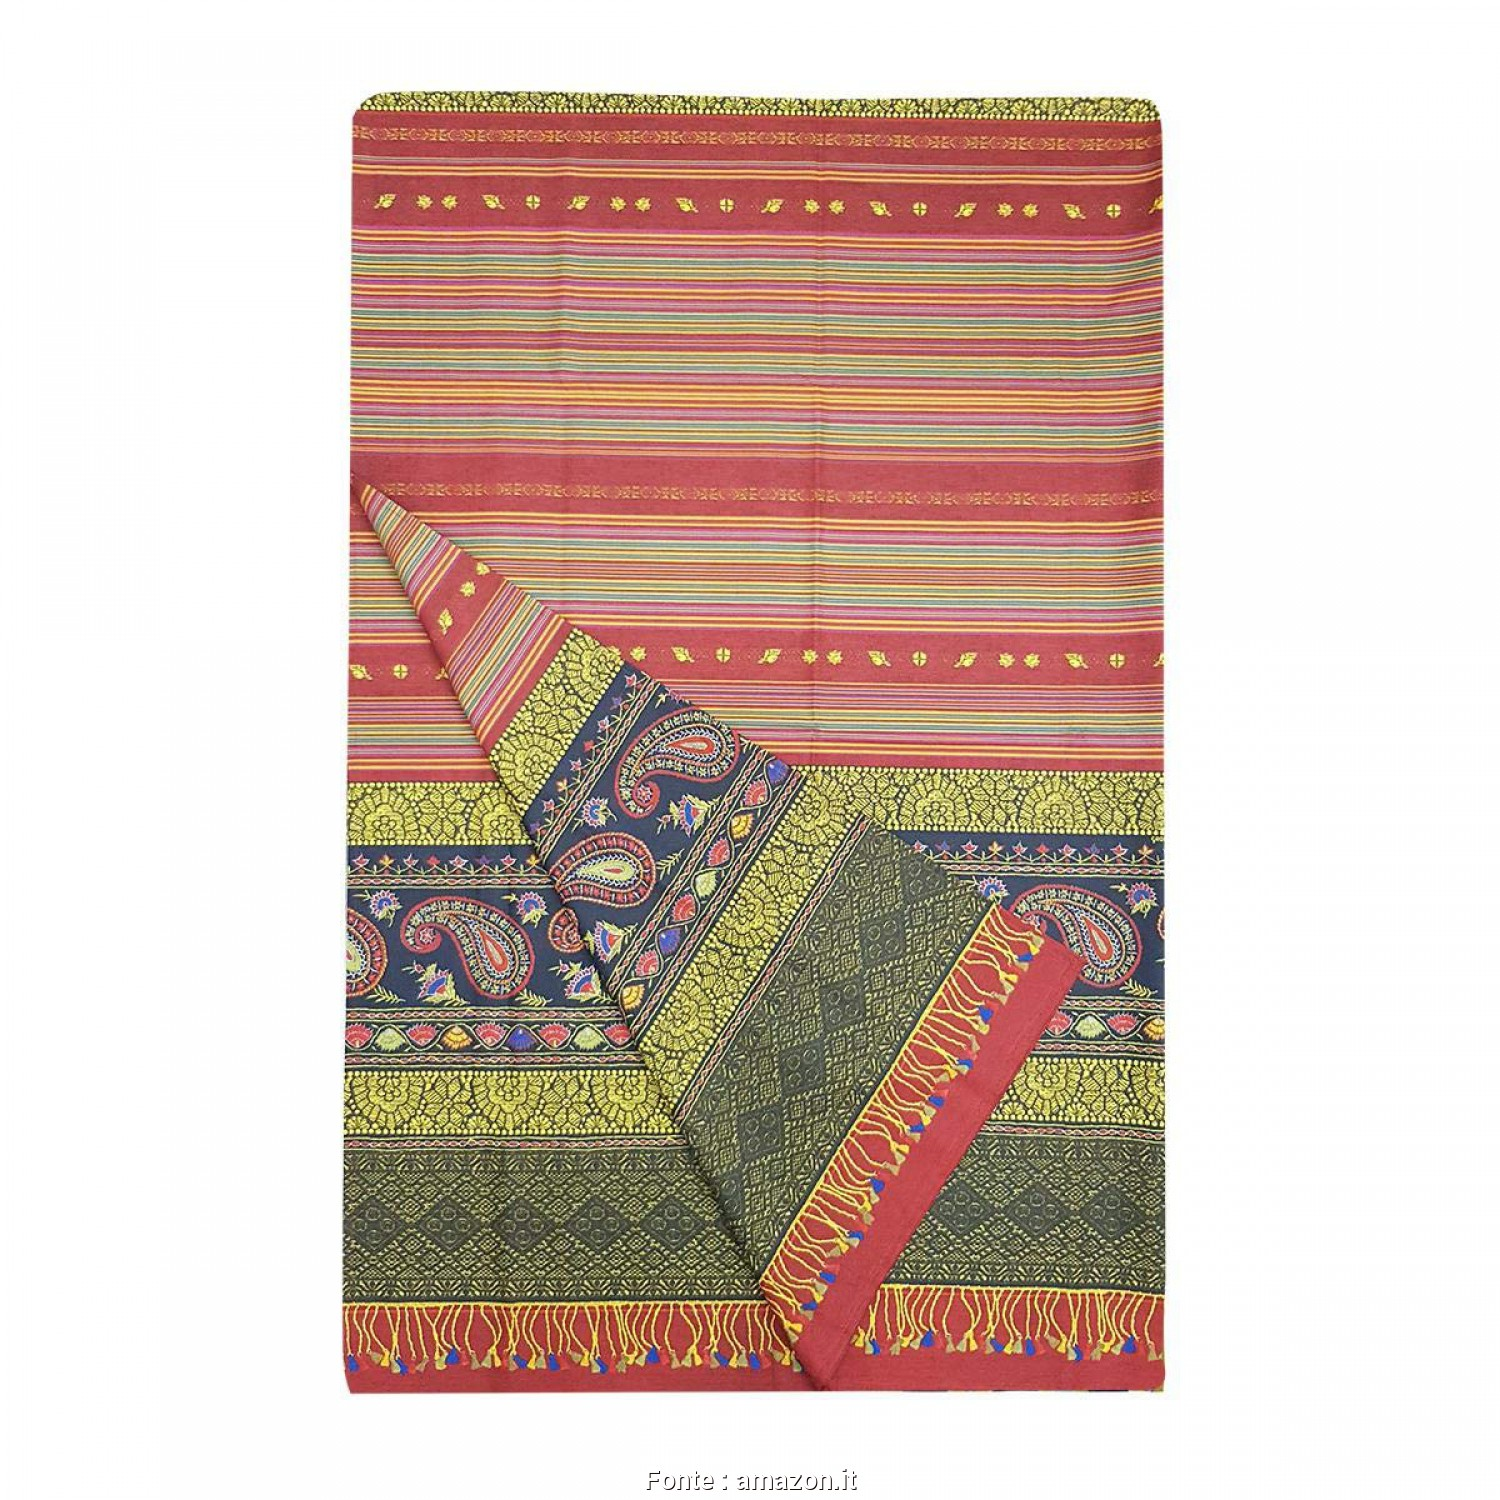 Deale 6 Amazon Granfoulard, Divano